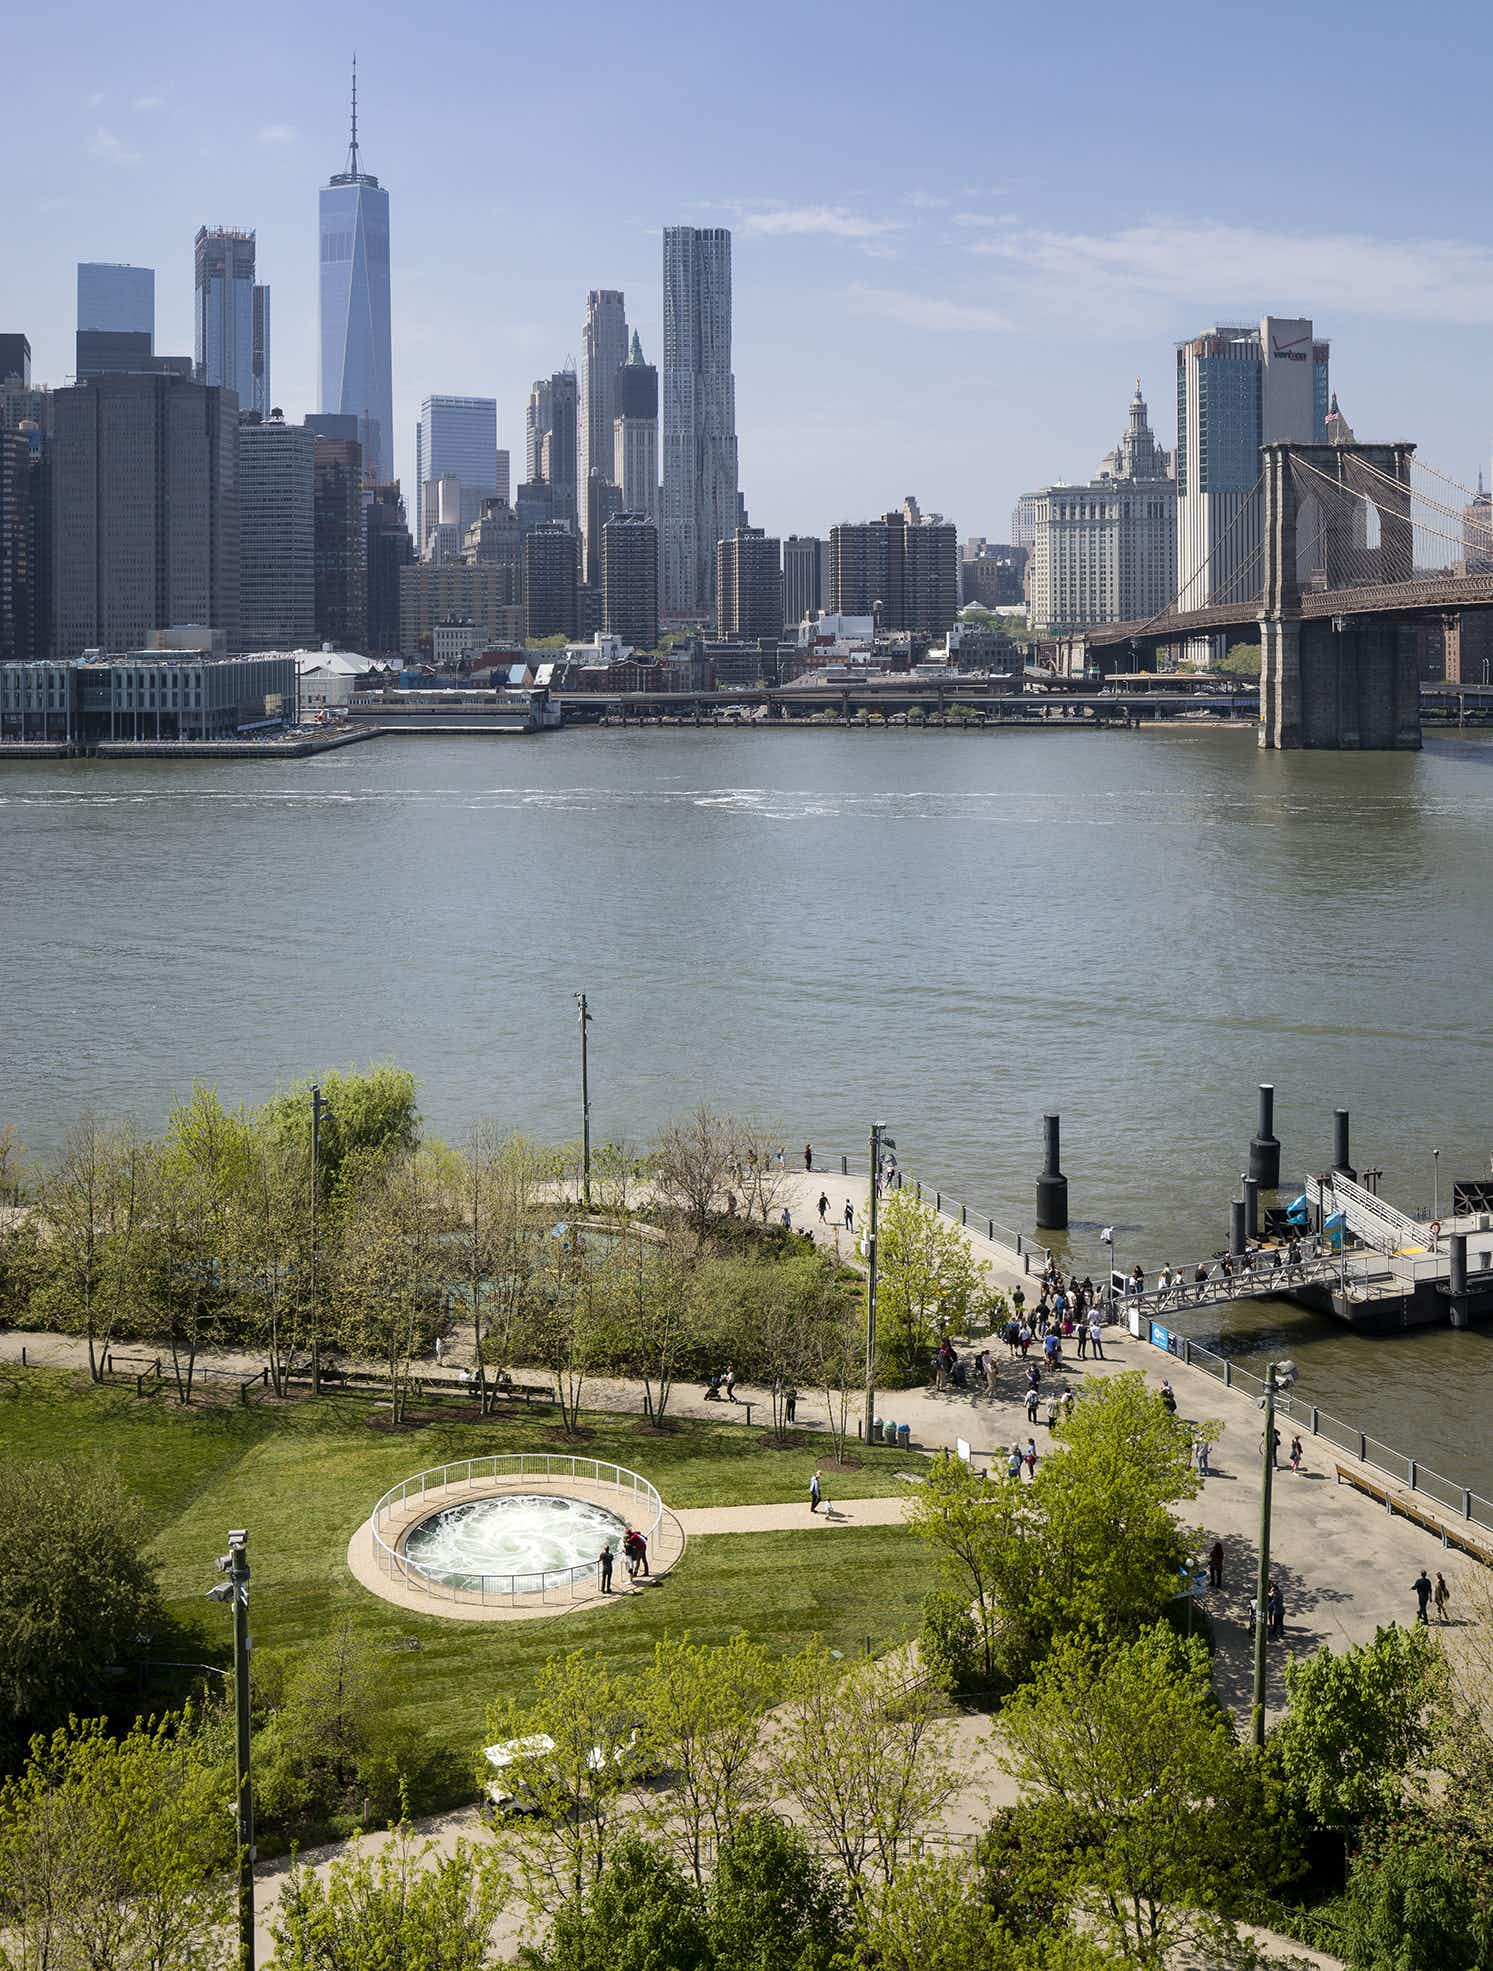 Anish Kapoor wows New Yorkers with his 'Descension' whirlpool installation